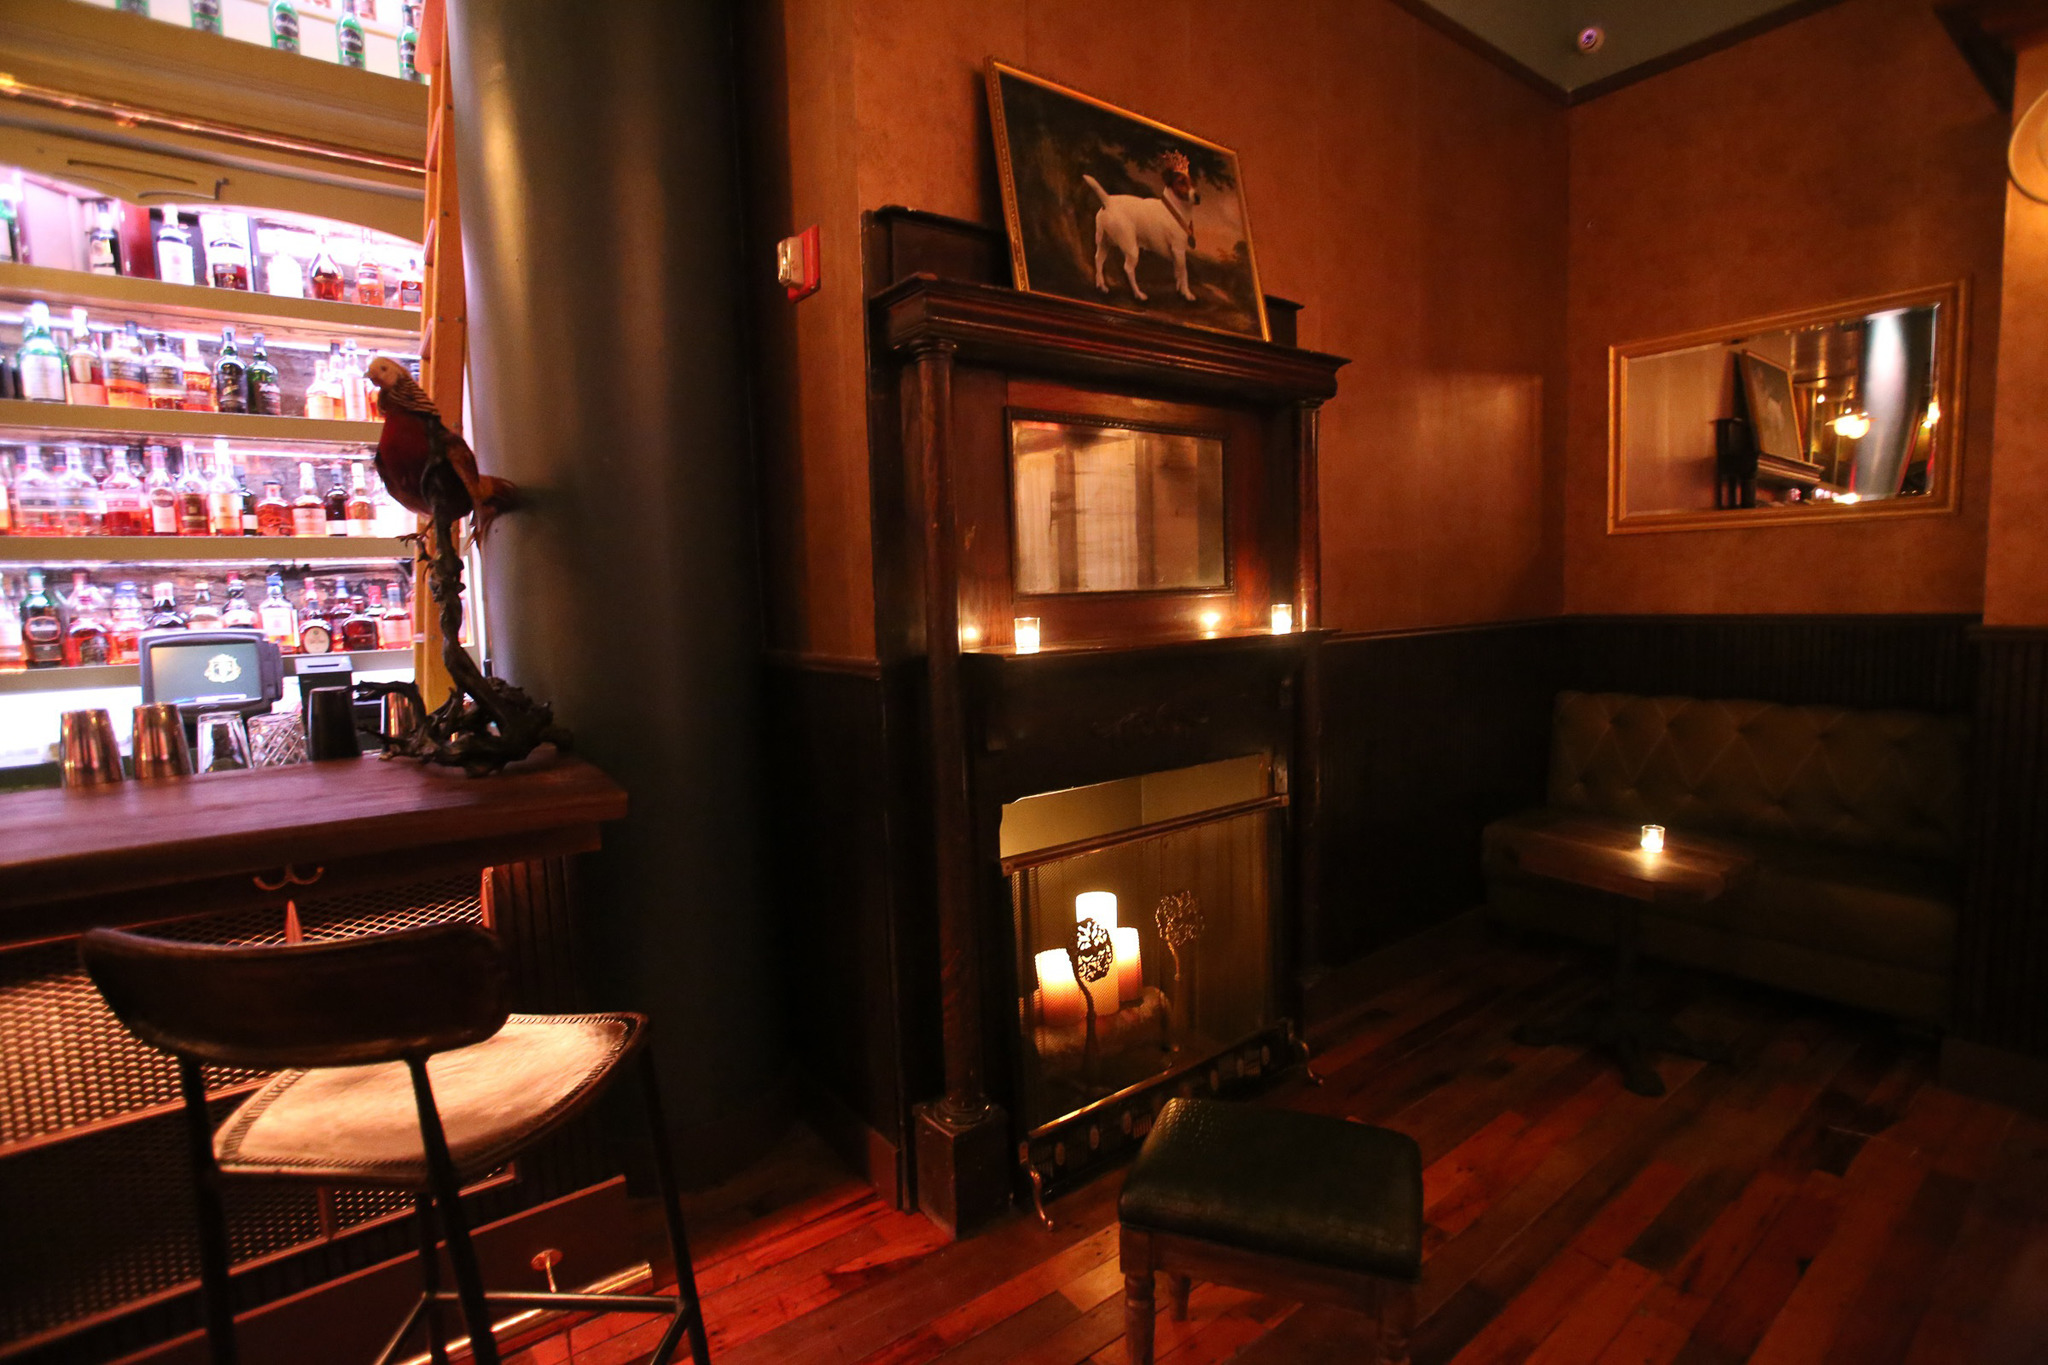 Badass Home Decor Fireplaces At New York Bars Ten Toasty Hearths To Warm You